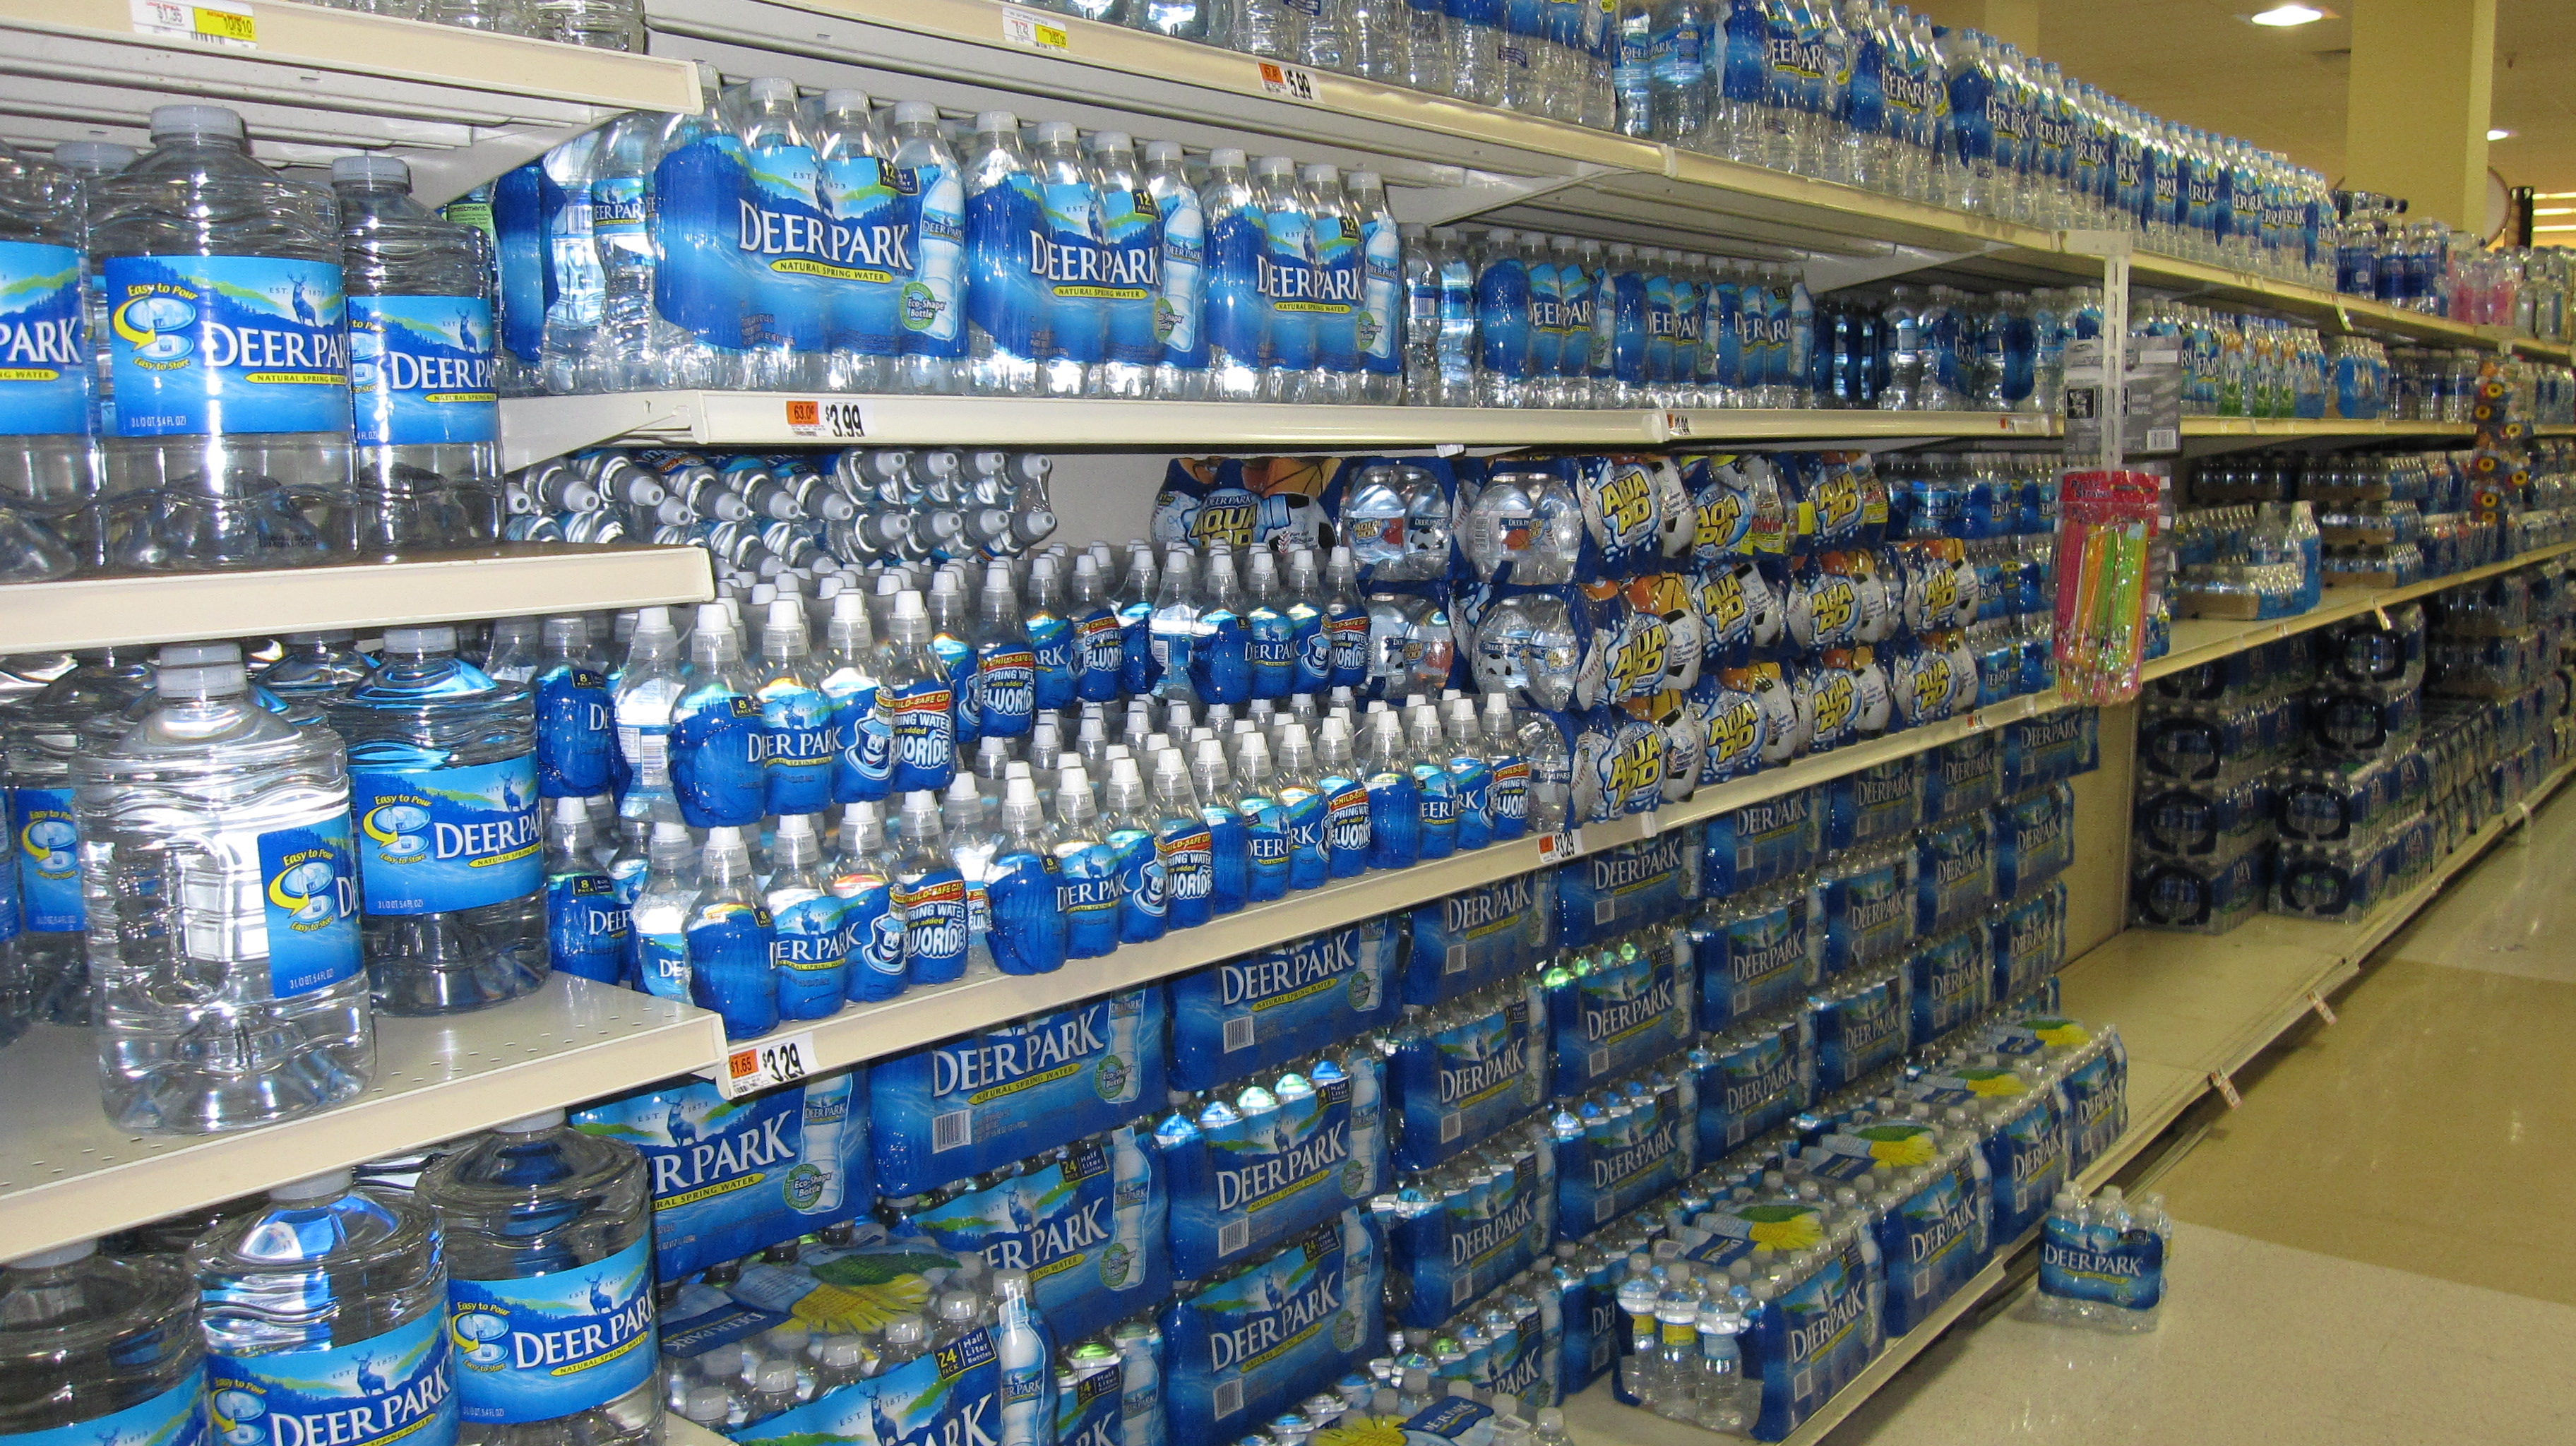 external image Bottled_water_in_supermarket.JPG